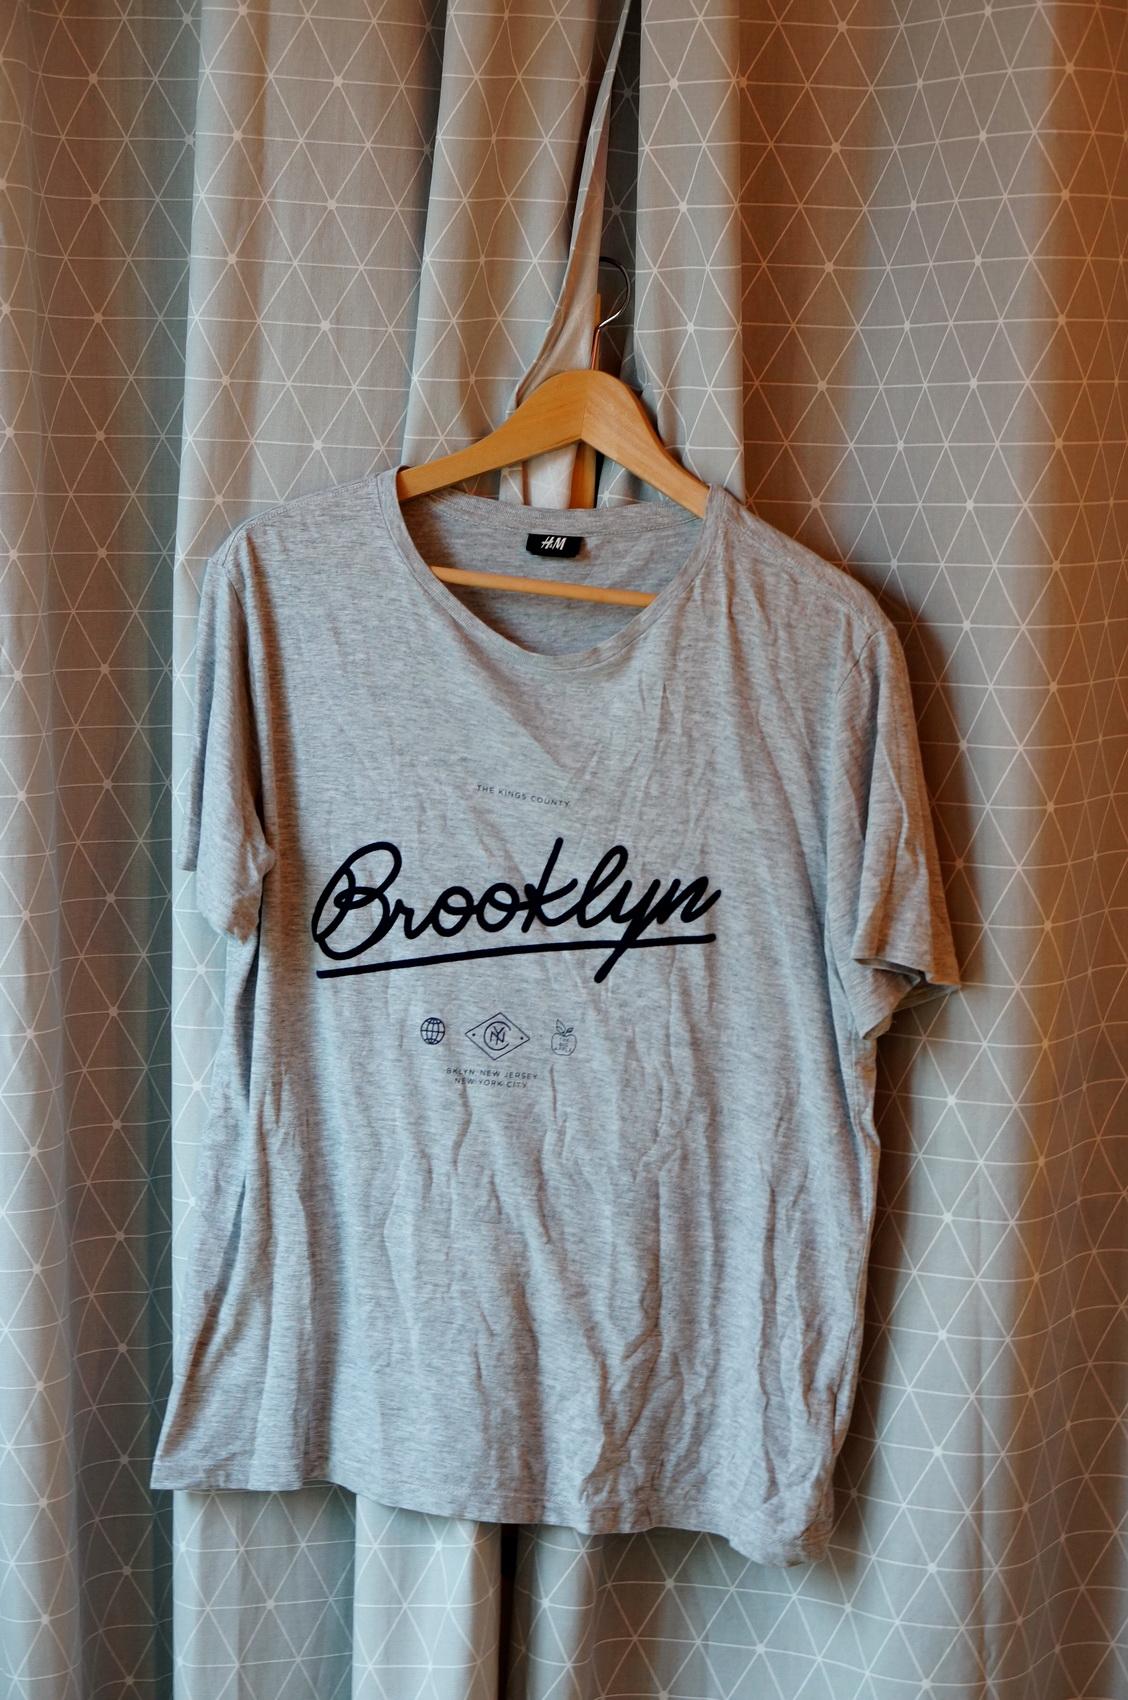 brocante, vide-grenier, vêtements de seconde main, tee-shirt h&m, tee shirt homme, tee-shirt